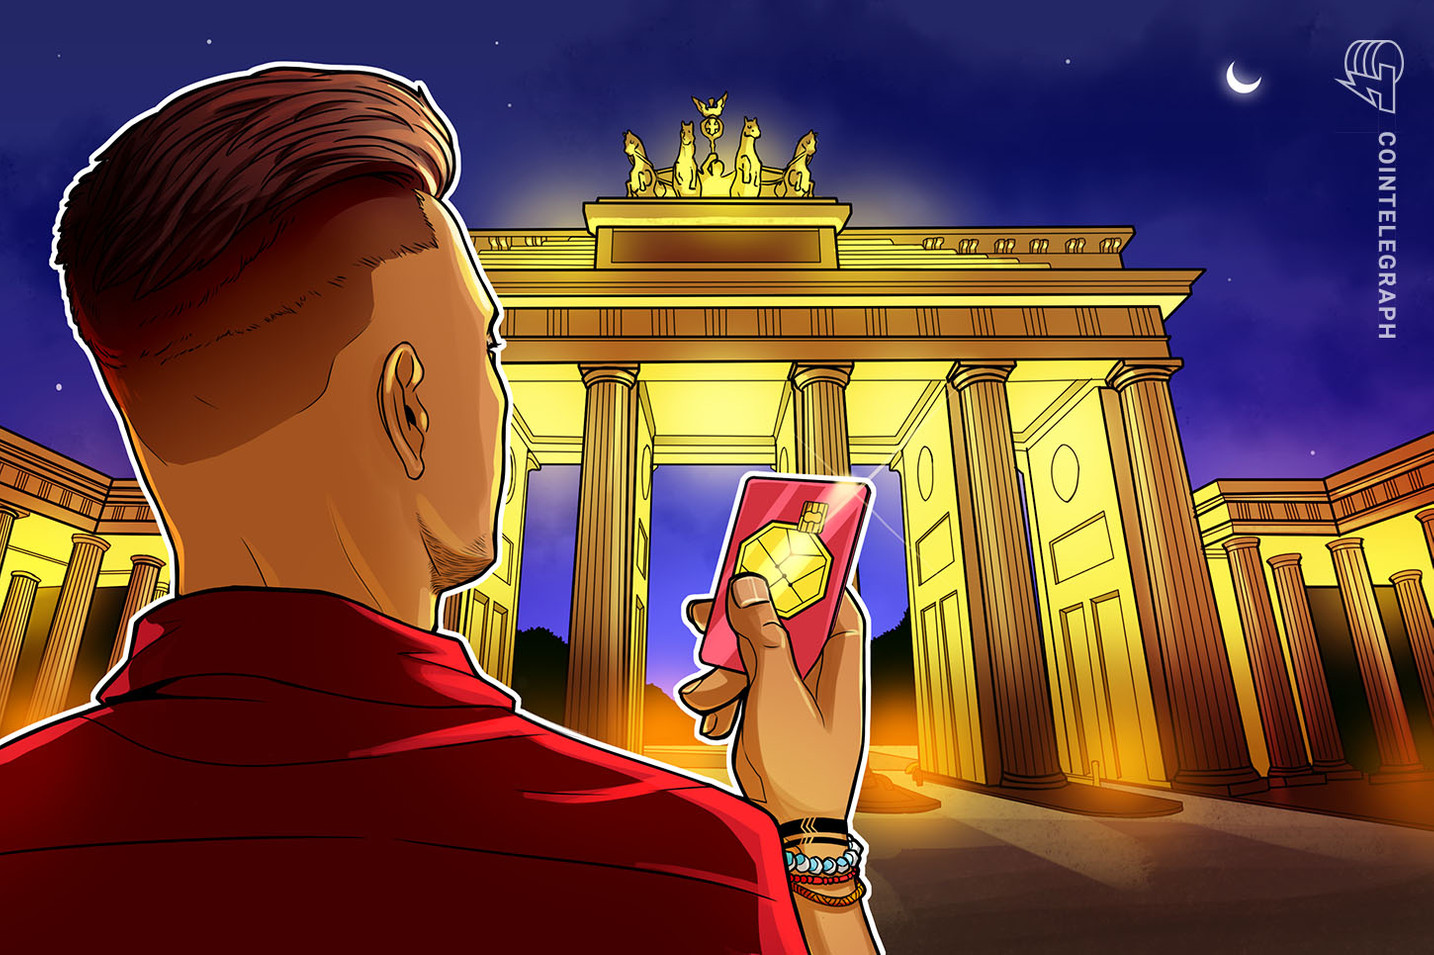 2019: A Berlin Odyssey — 7 Days of Crypto-Living on ETH Debit Card